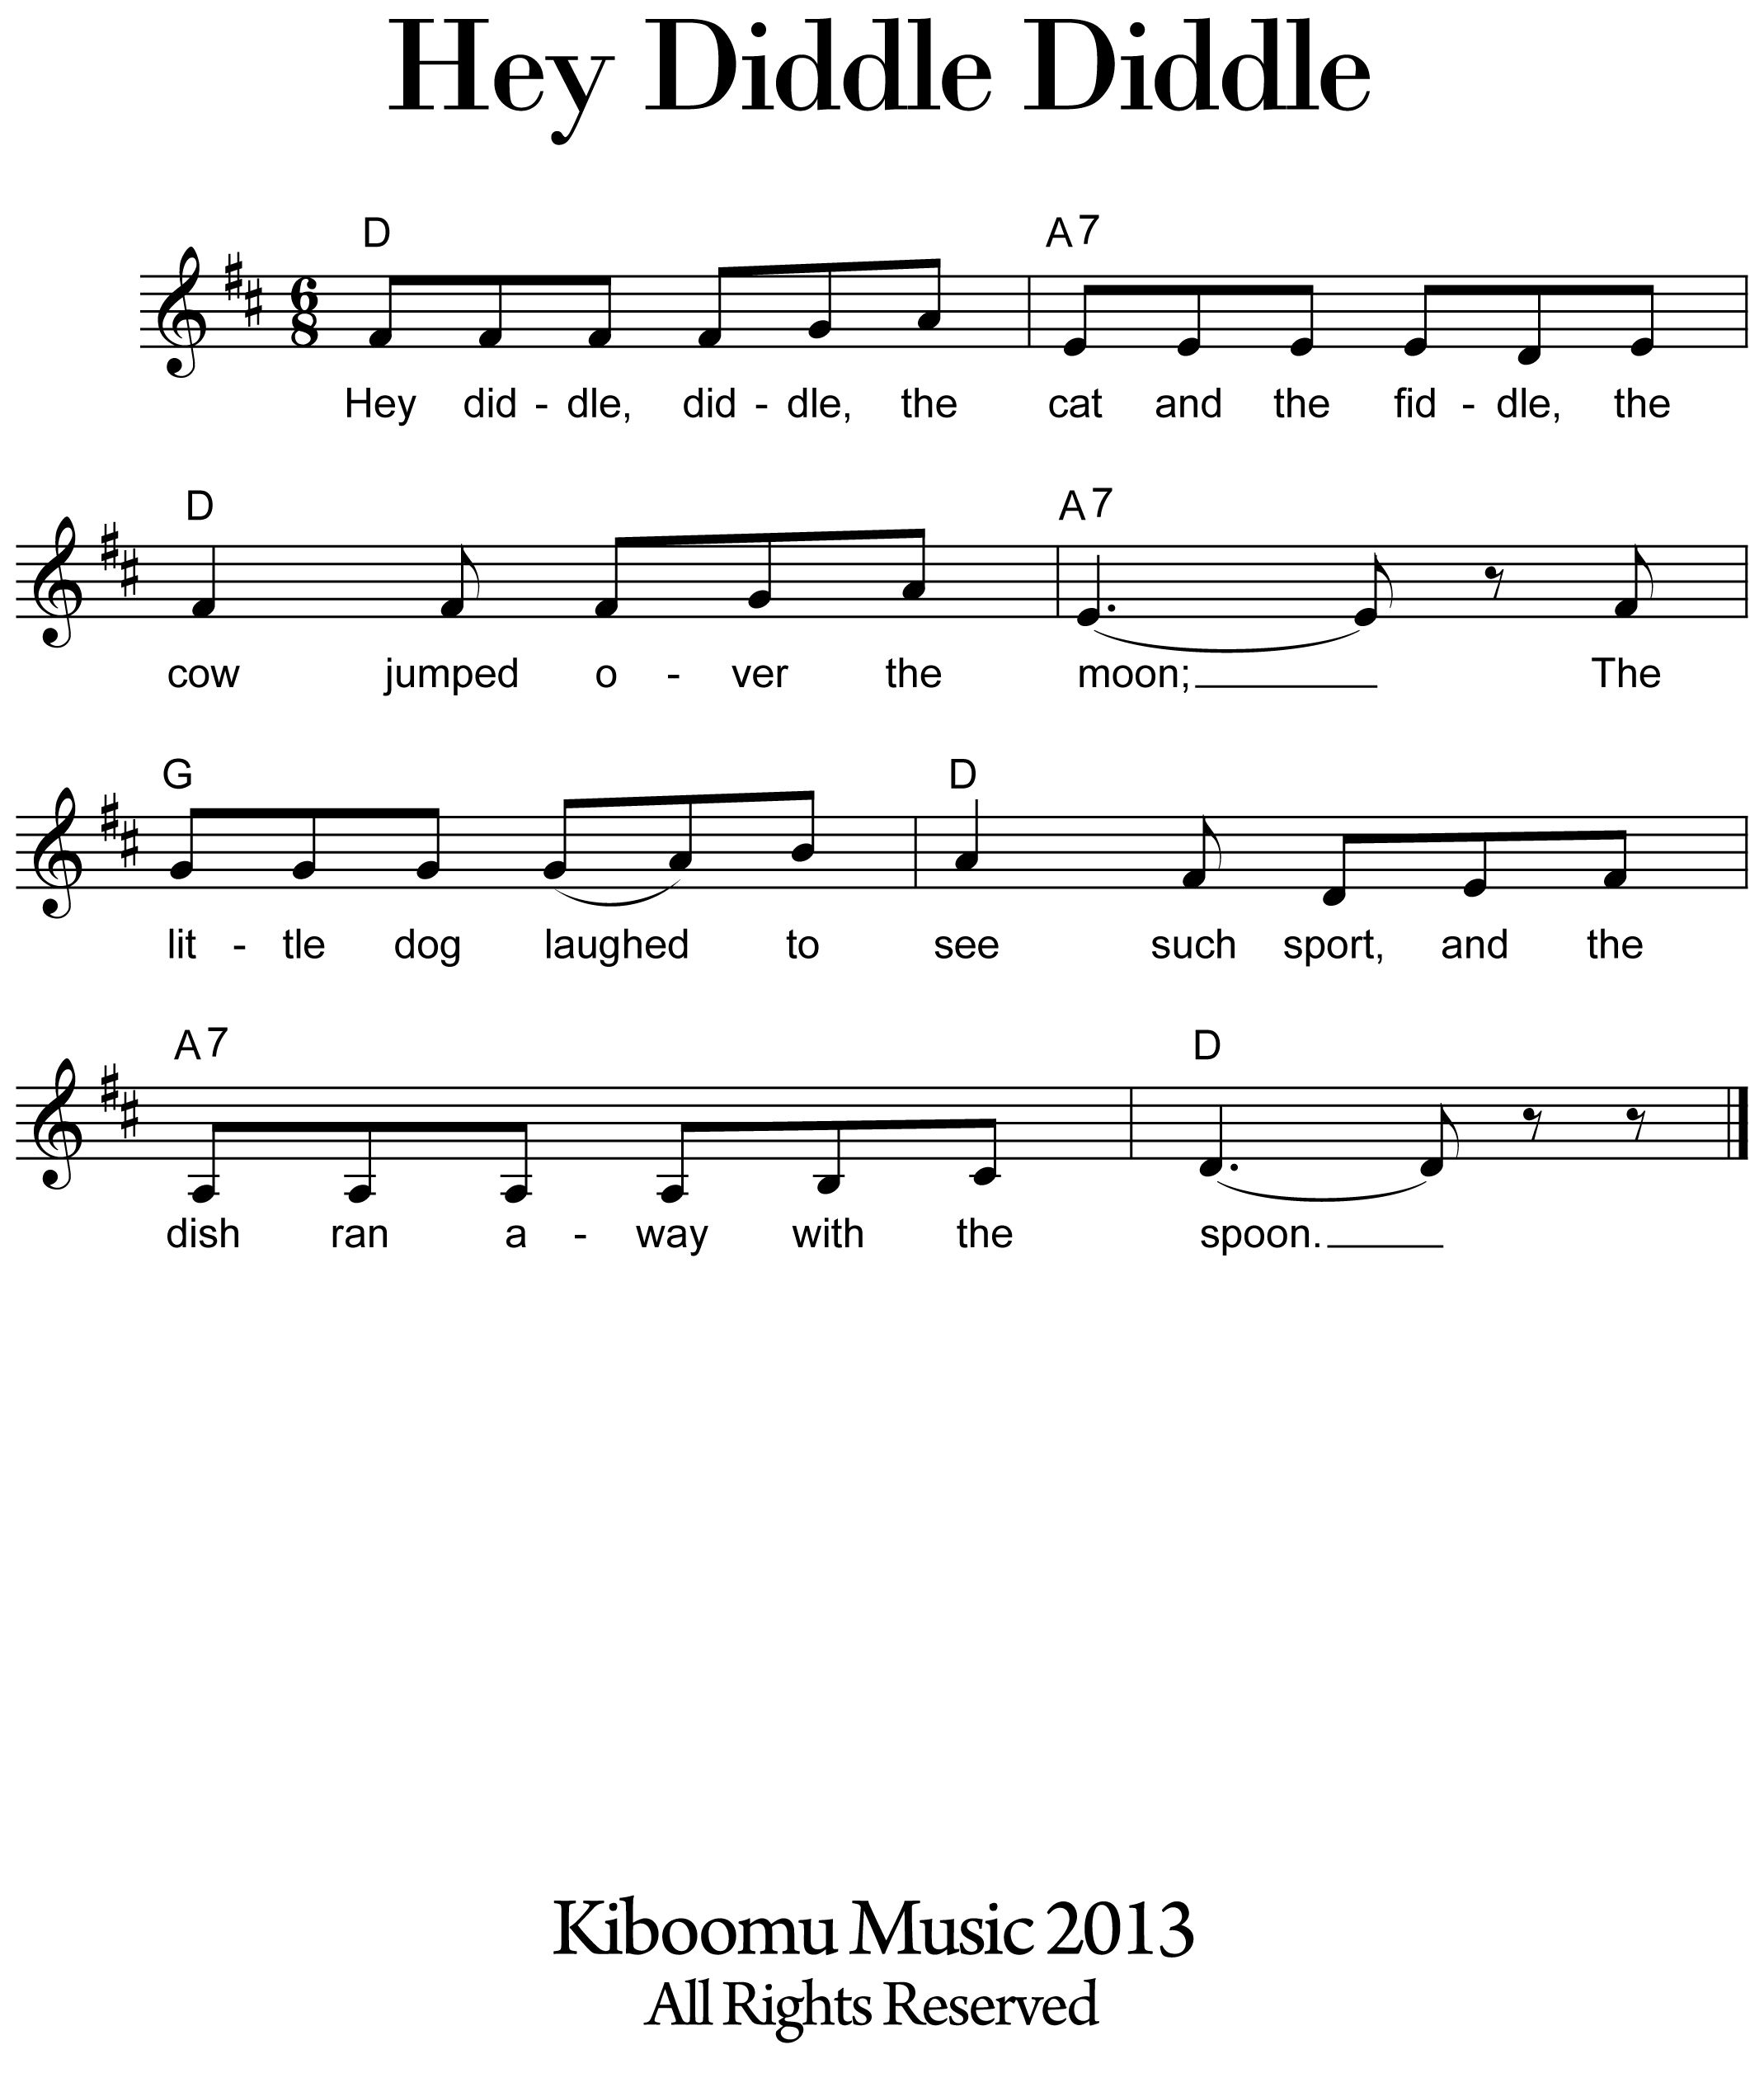 Sheet Music Printable Sheet Music And Hands On Pinterest: Hey+Diddle+Diddle+Sheet+Music+Download+Hey+Diddle+Diddle